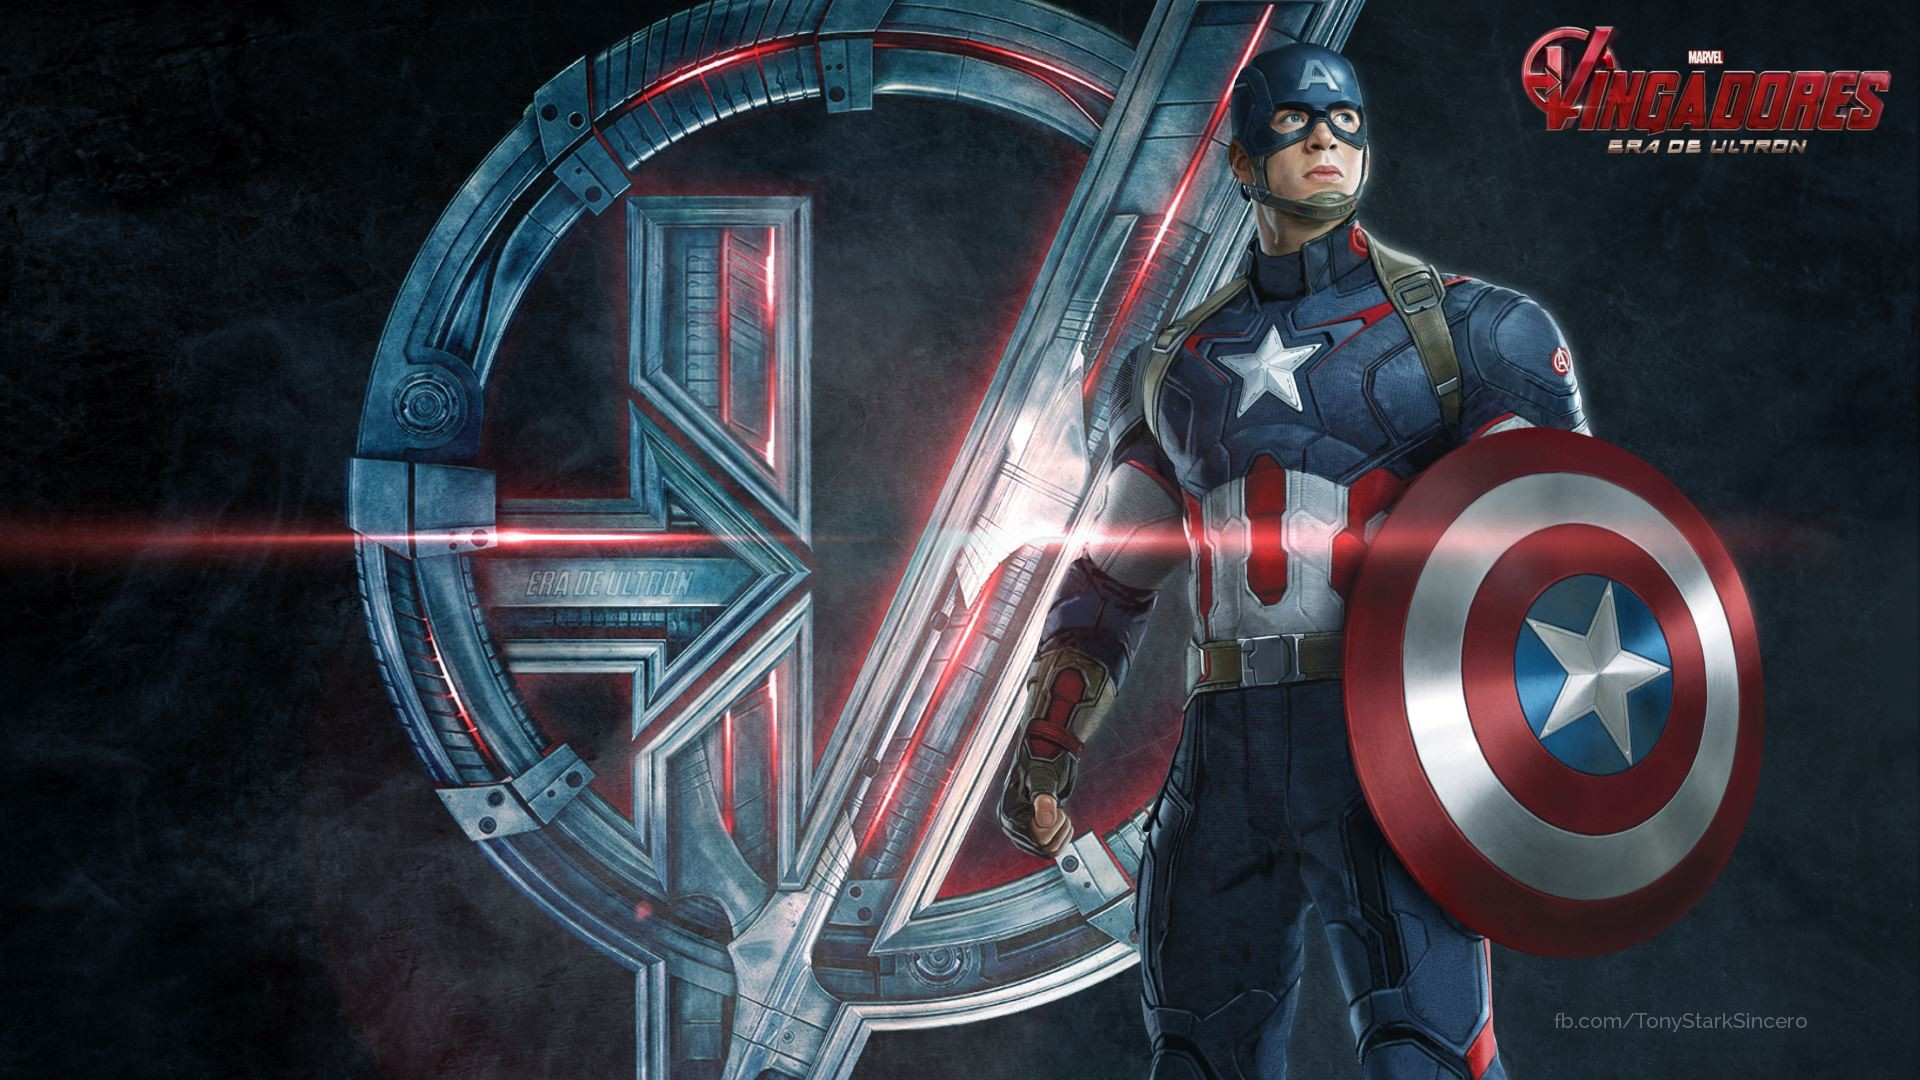 Captain america wallpapers 1920x1080 74 images - Captain america hd mobile wallpaper ...